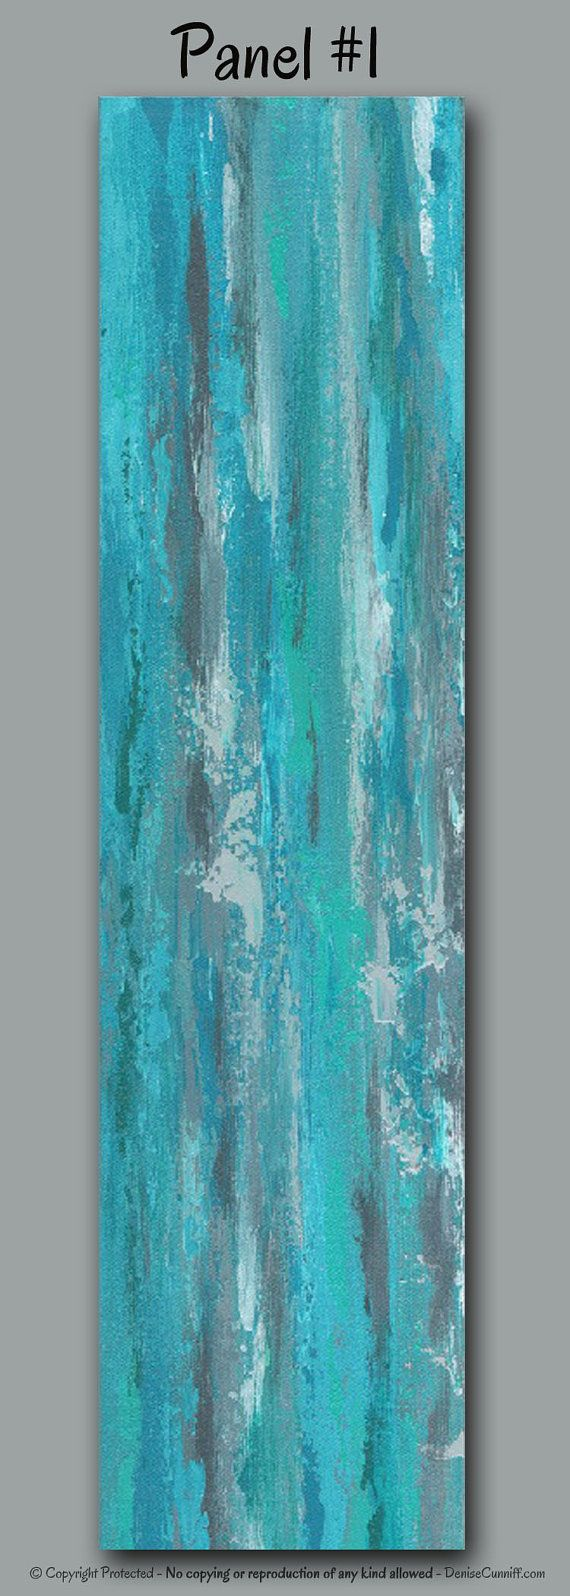 turquoise office decor. Turquoise Office Decor. Large Abstract Wall Art For Gray, Teal, And Home Decor I